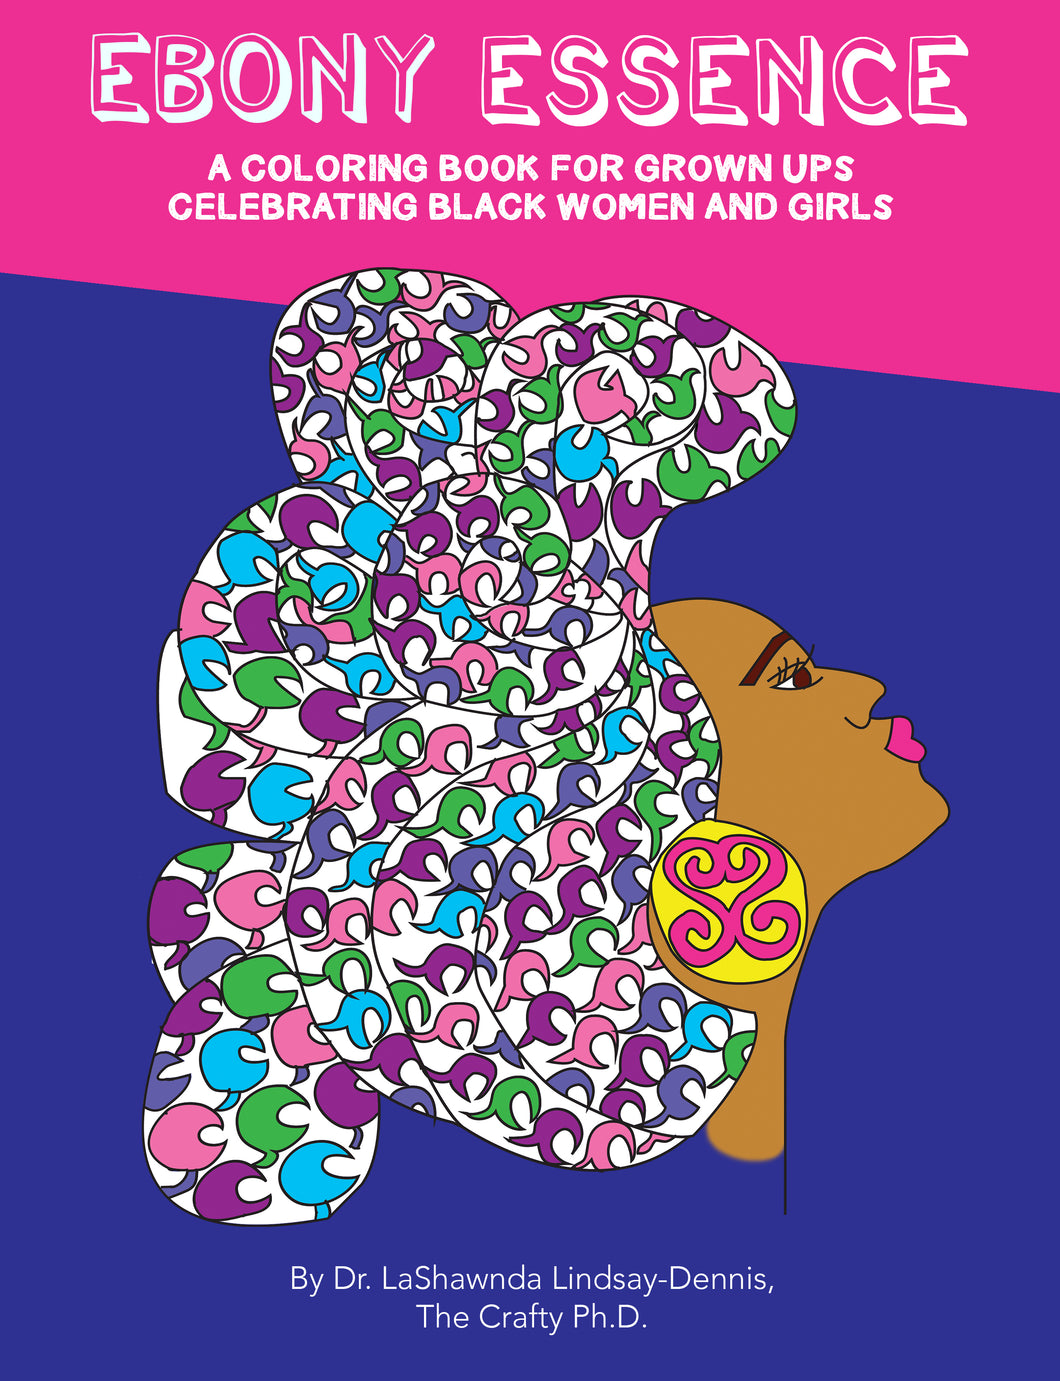 Ebony Essence Coloring Book